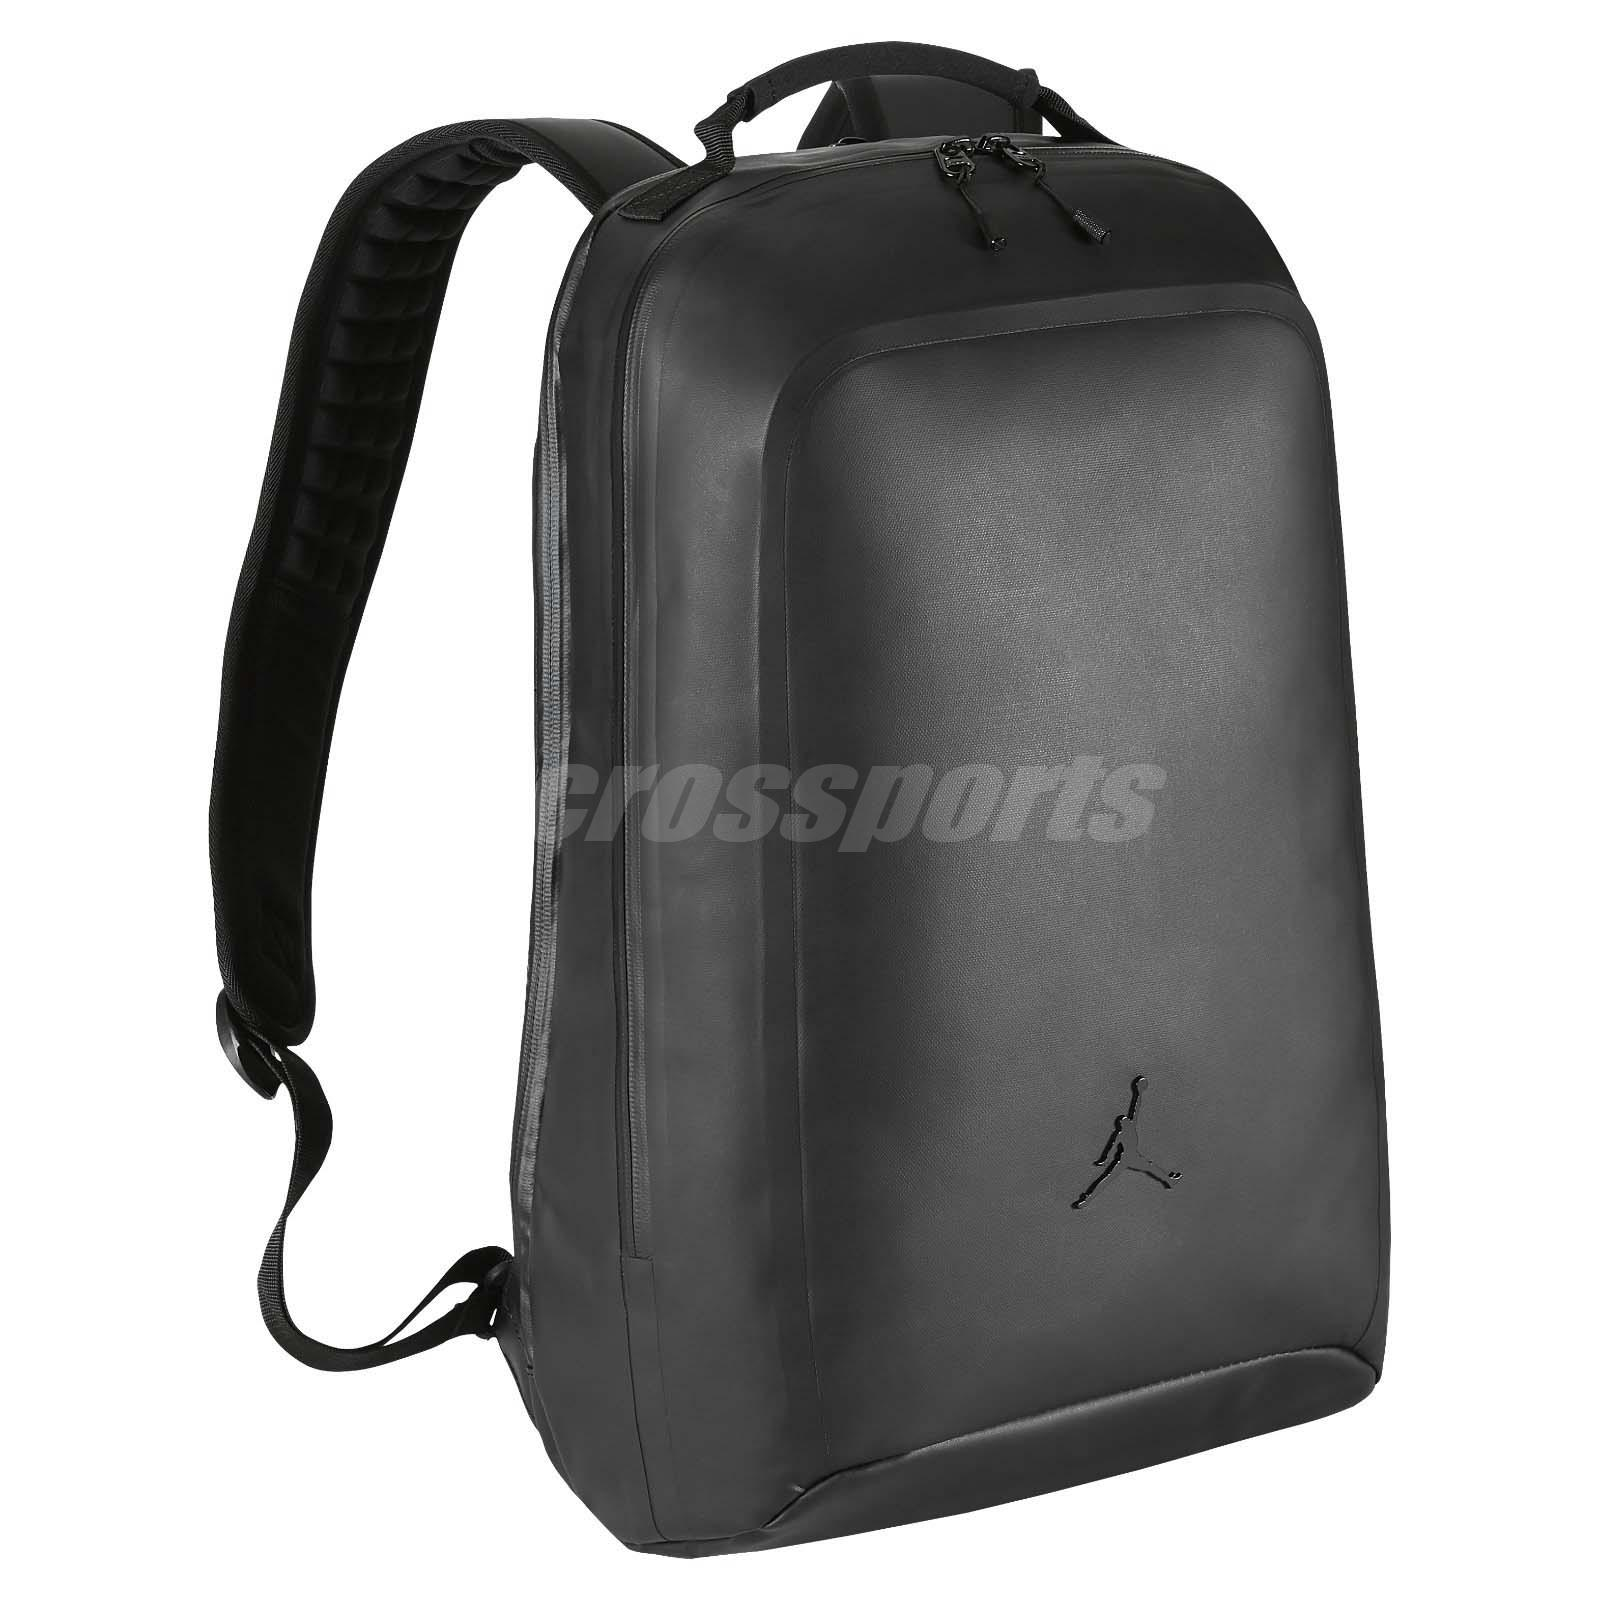 Nike Jordan Backpack Shield Black Laptop Sleeve Water-Resistant BA5407-010 e6906a67c579a